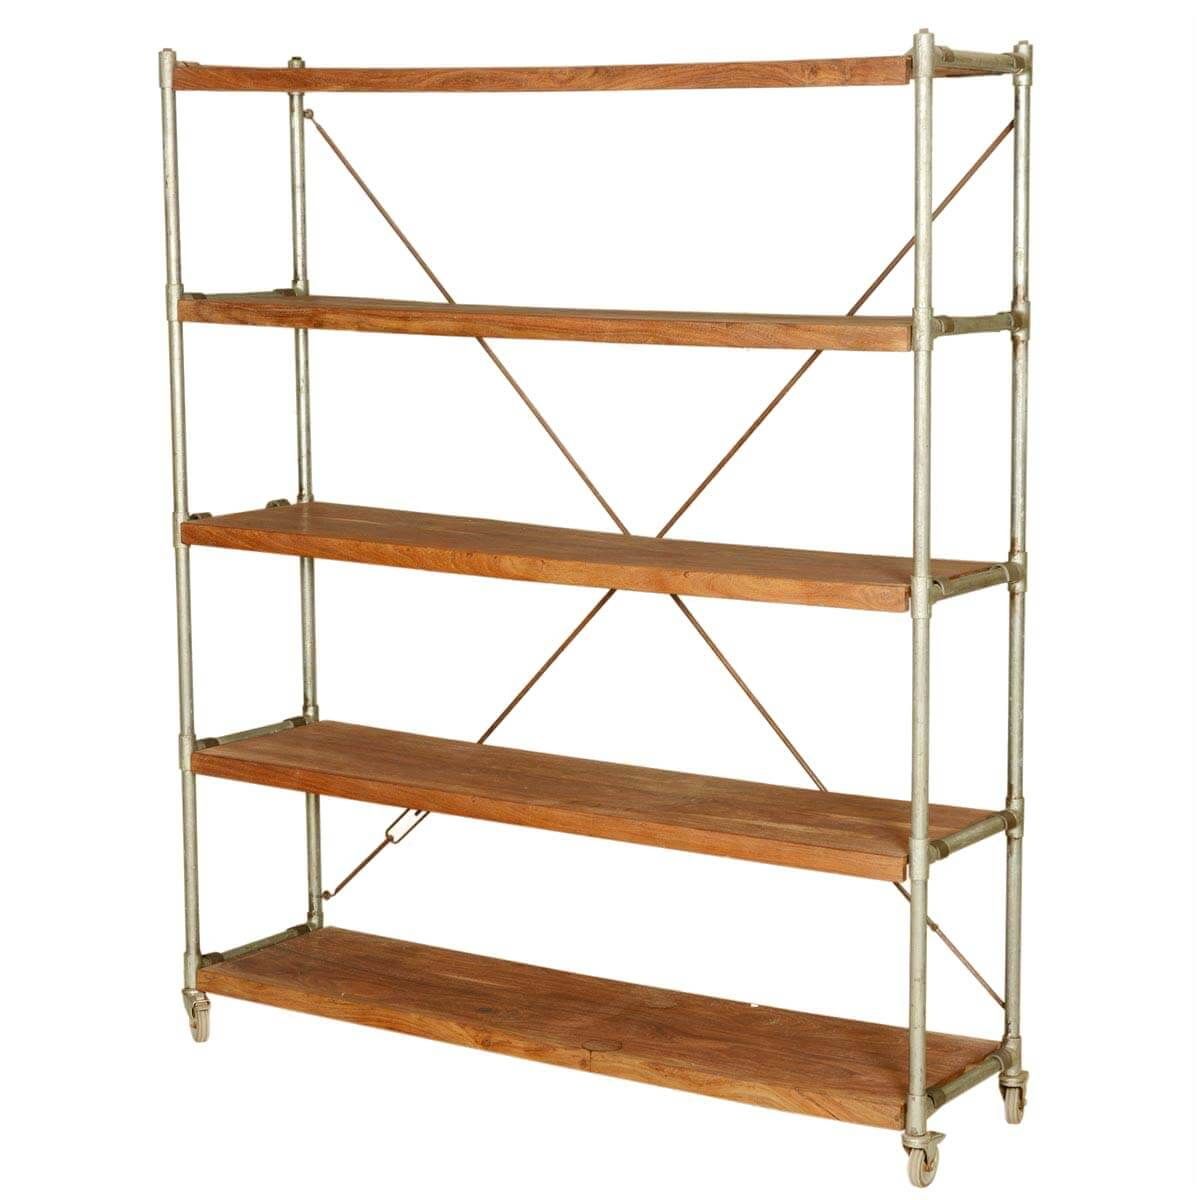 Evansville 5 Open Shelf Rustic Large Solid Wood Etagere Bookcase